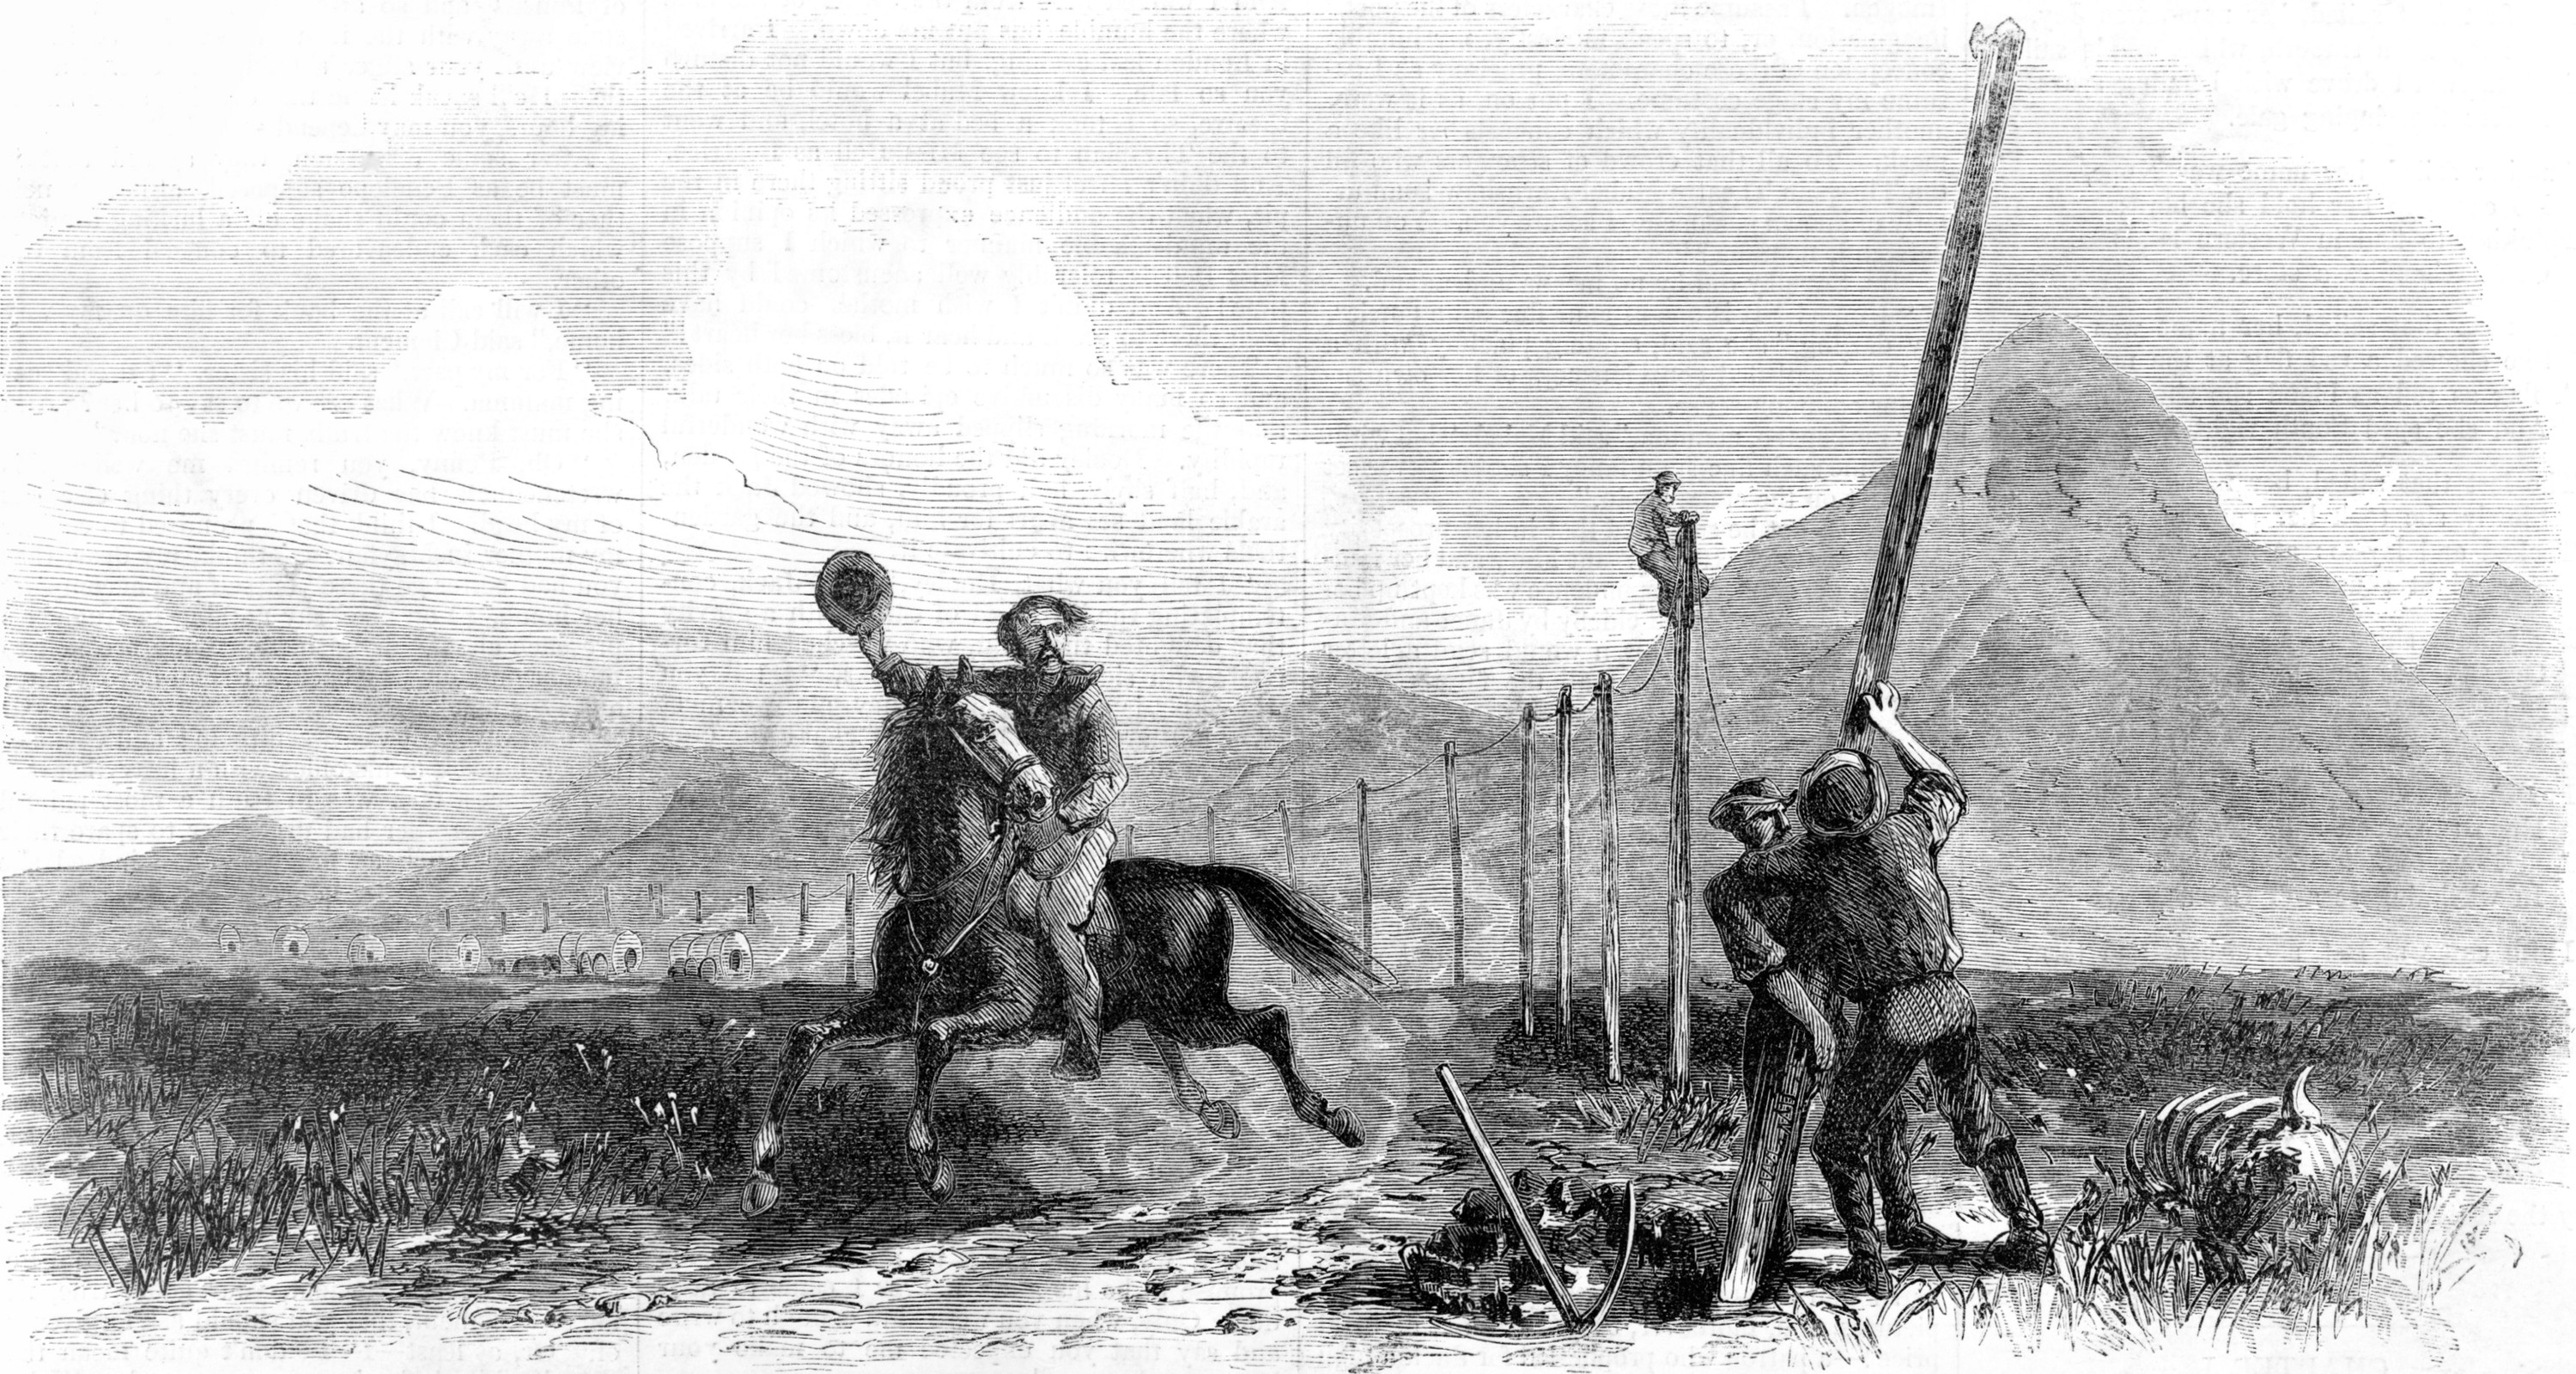 Putting in posts for an early telegraph line